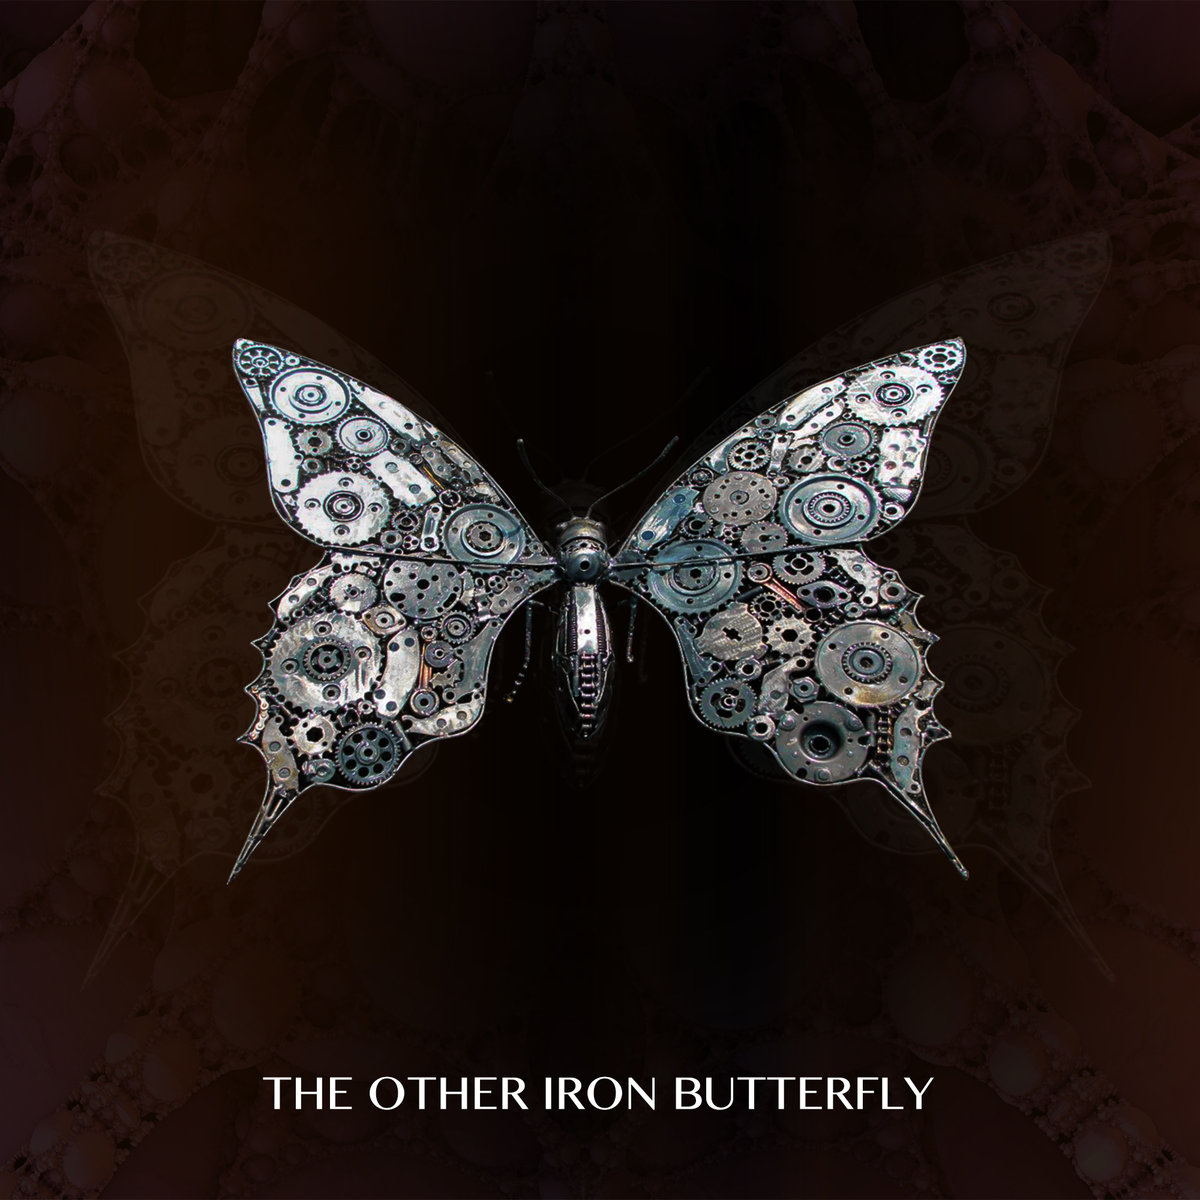 UCHU & Black IzolentaH - The Other Iron Butterfly